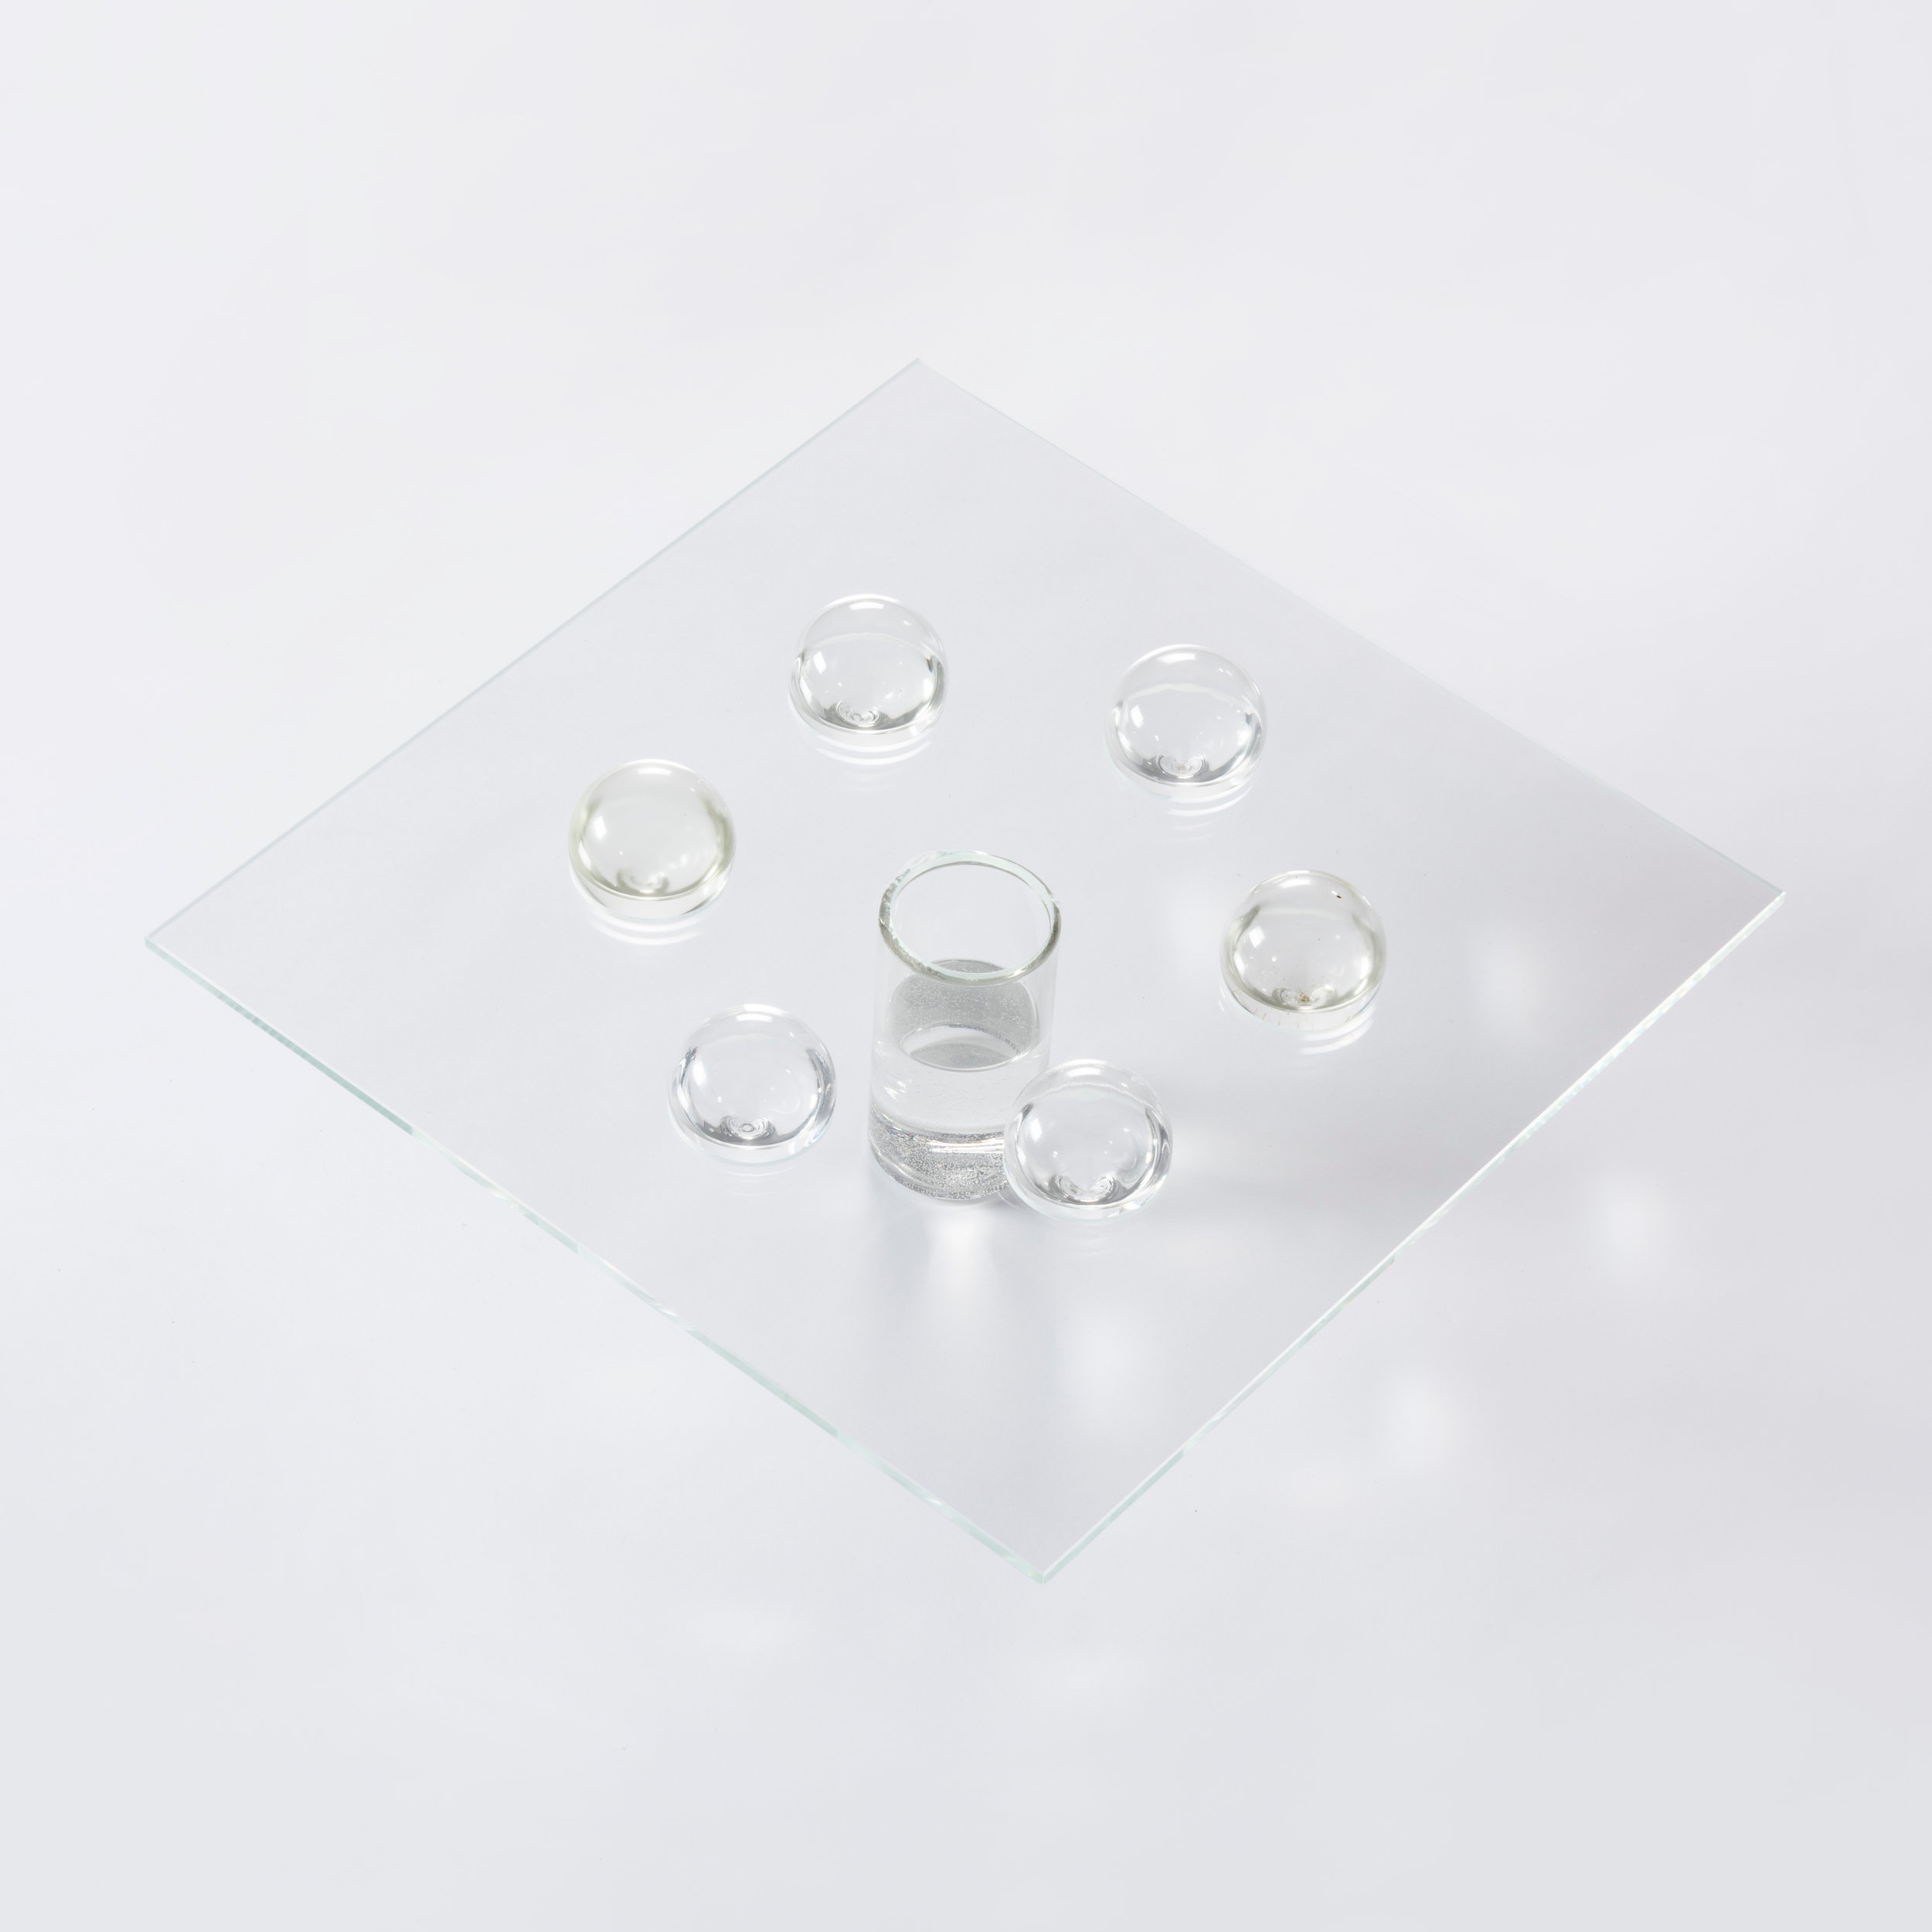 sculptural collection of water